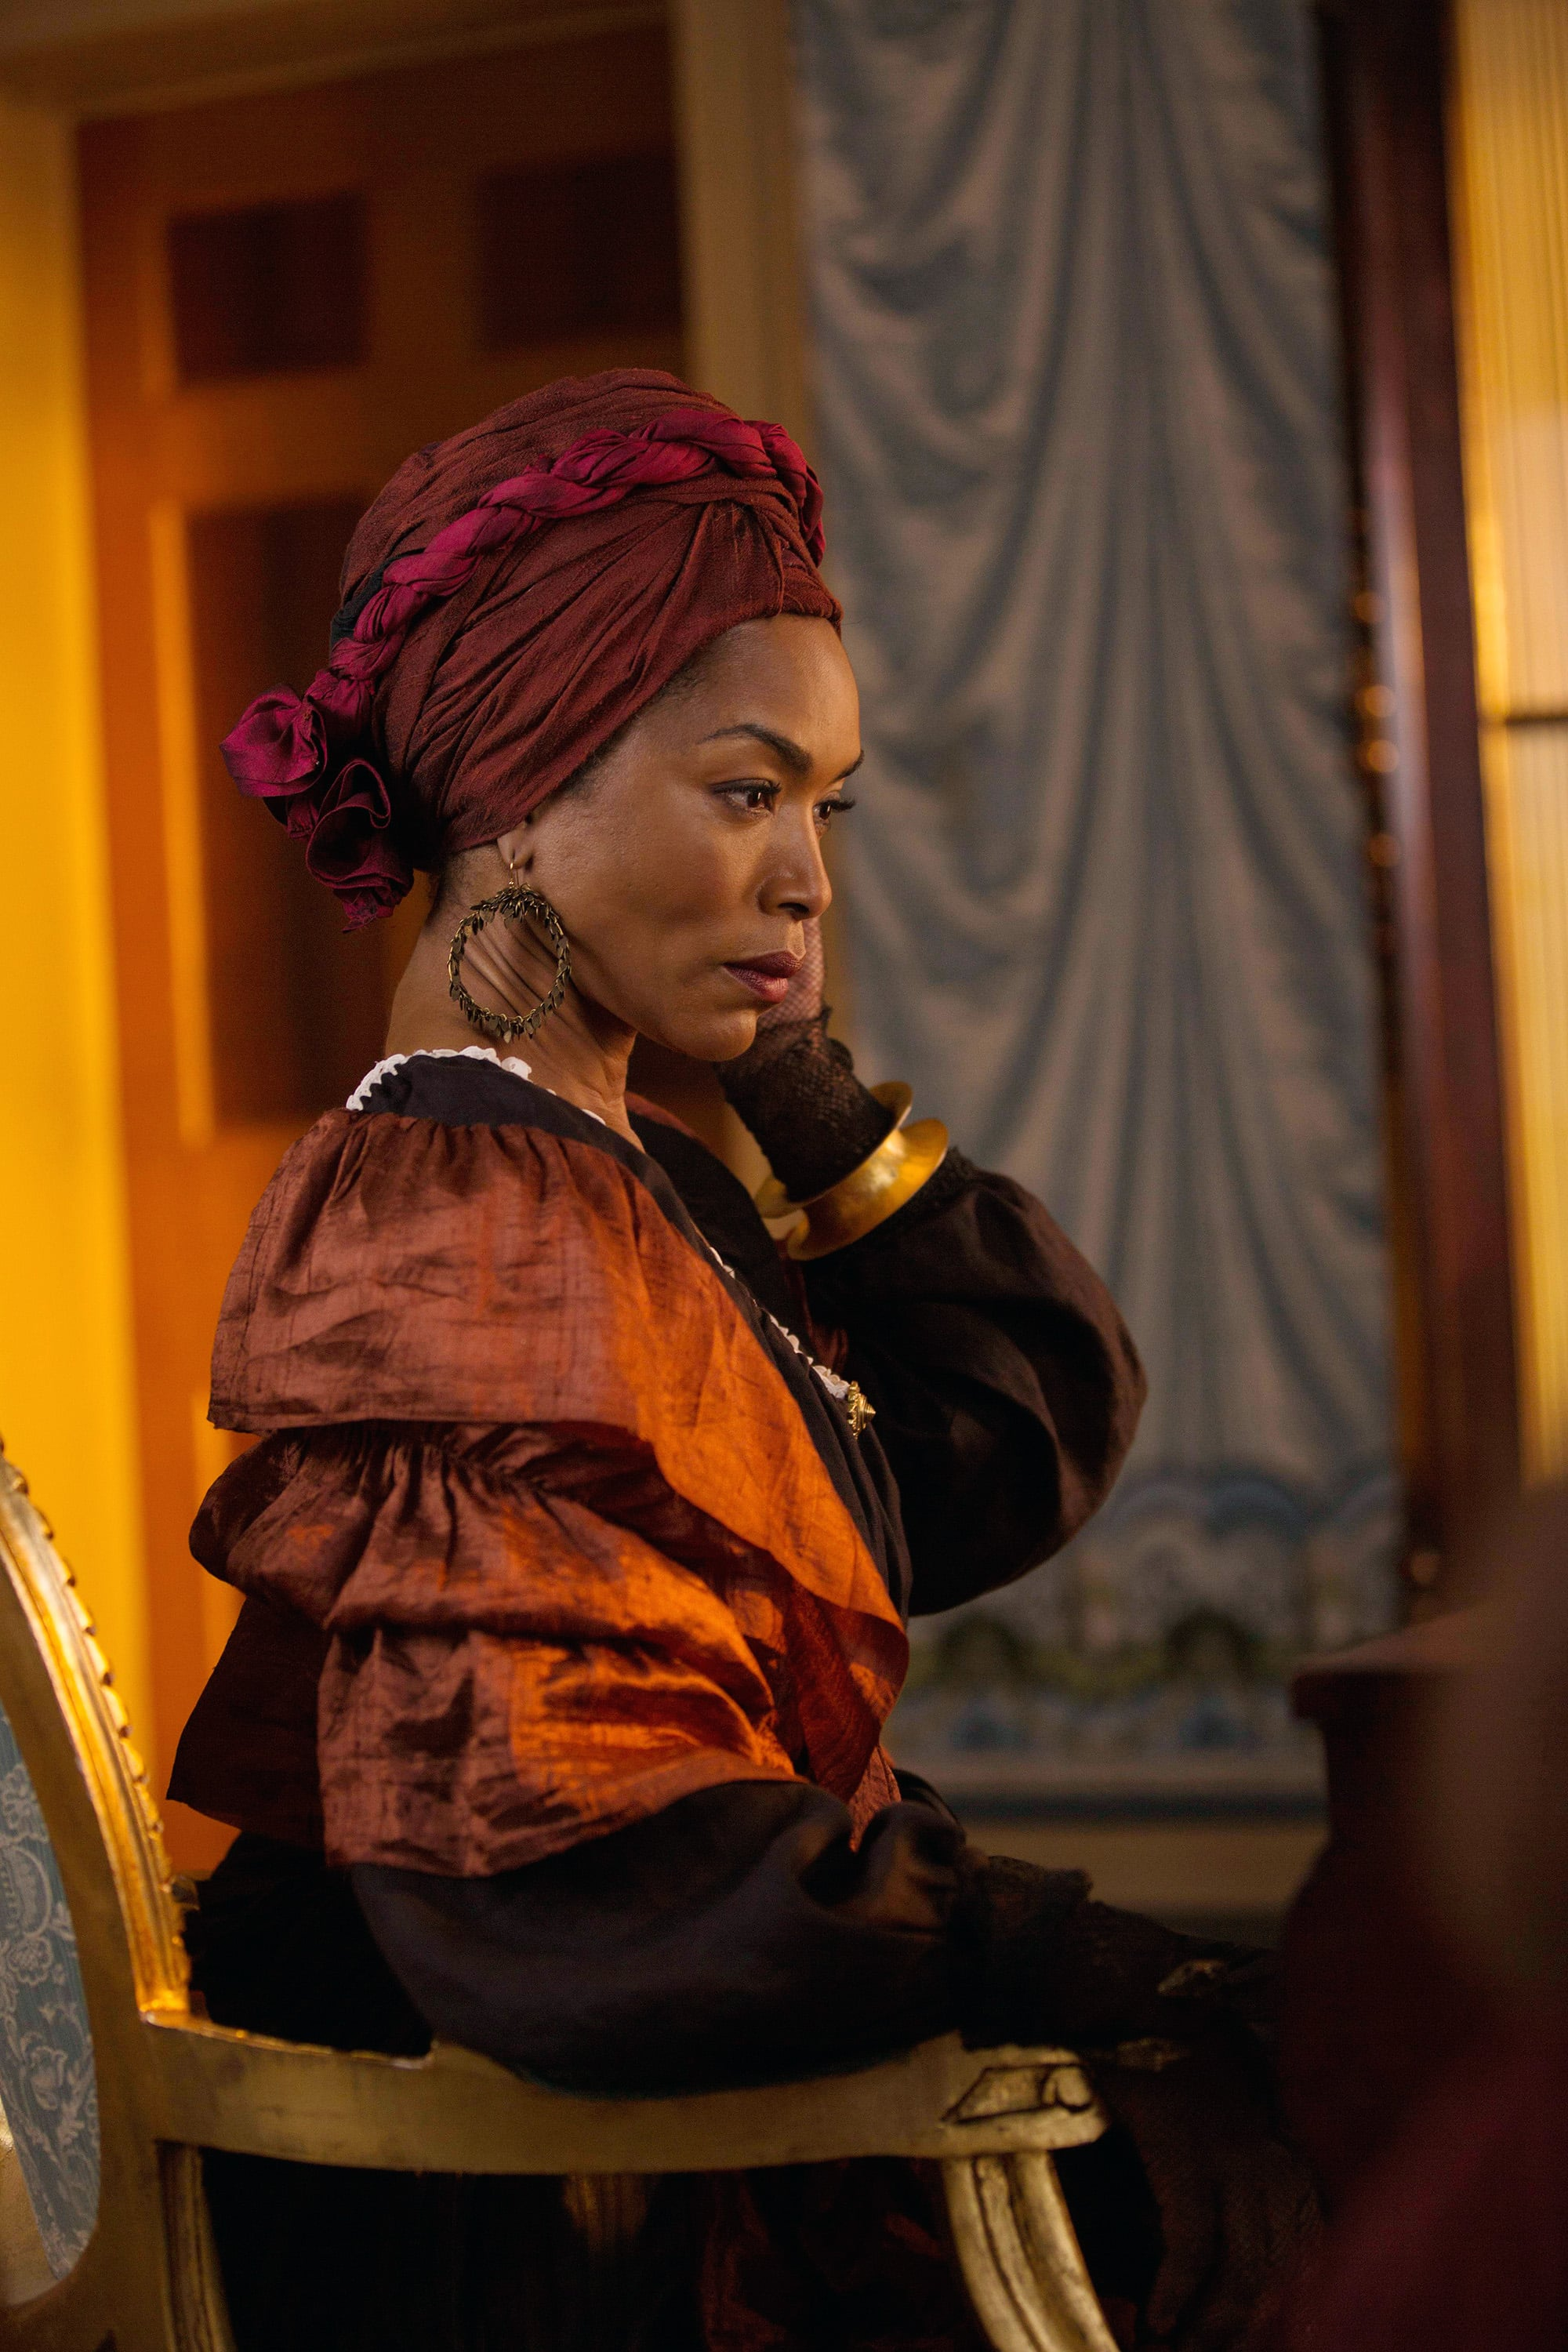 AMERICAN HORROR STORY: COVEN, Angela Bassett  as Marie Laveau in 'Bitchcraft' (Season 3, Episode 1, aired October 9, 2013), 2011-, ph: Michele K. Short/FX Networks/courtesy Everett Collection